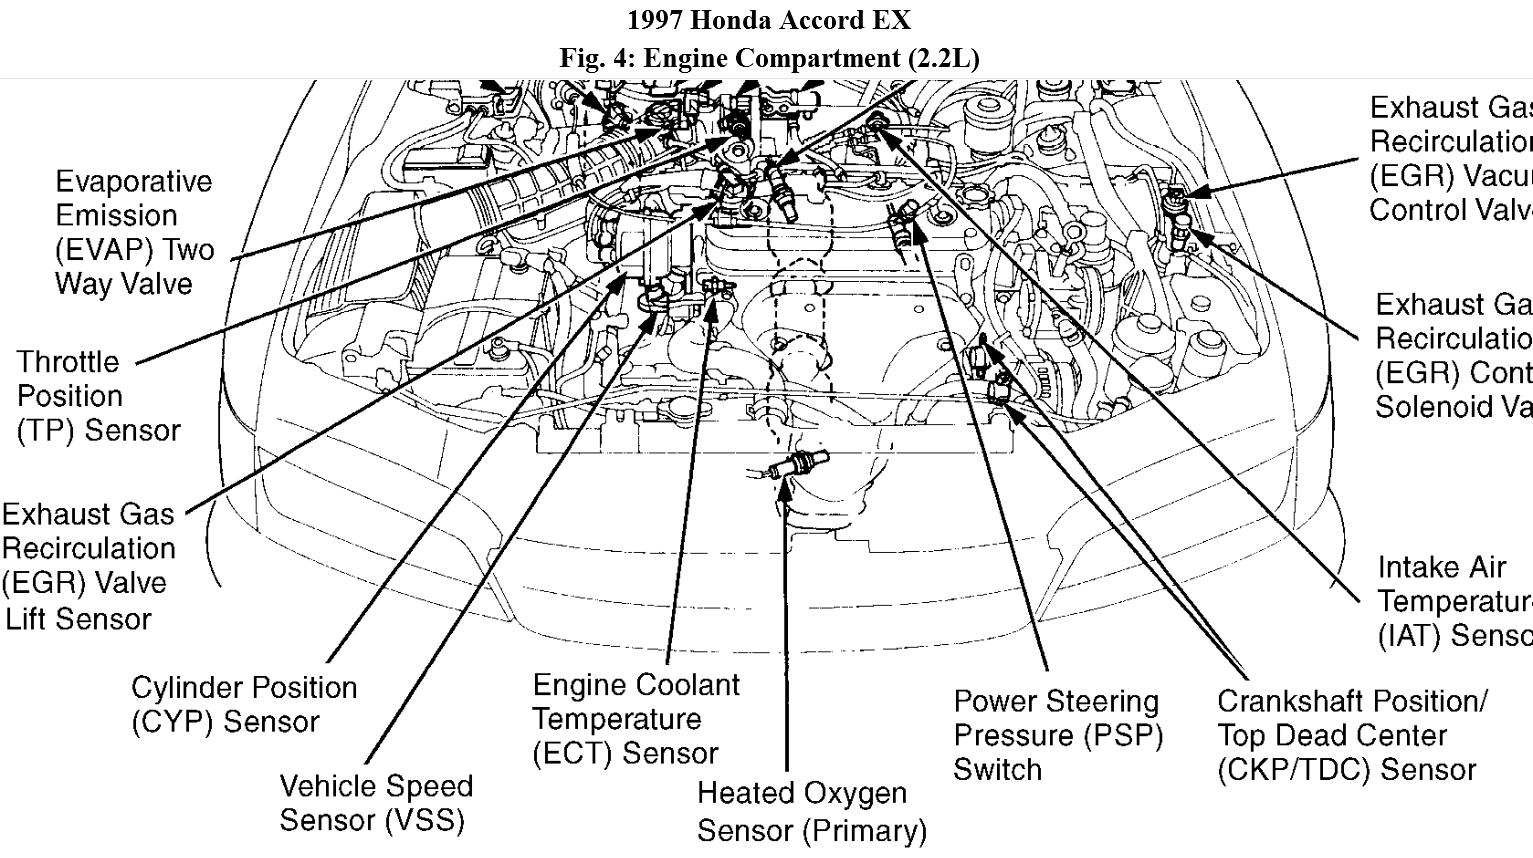 1997 Honda Accord Ex Engine Diagram - Wiring Diagrams Dash